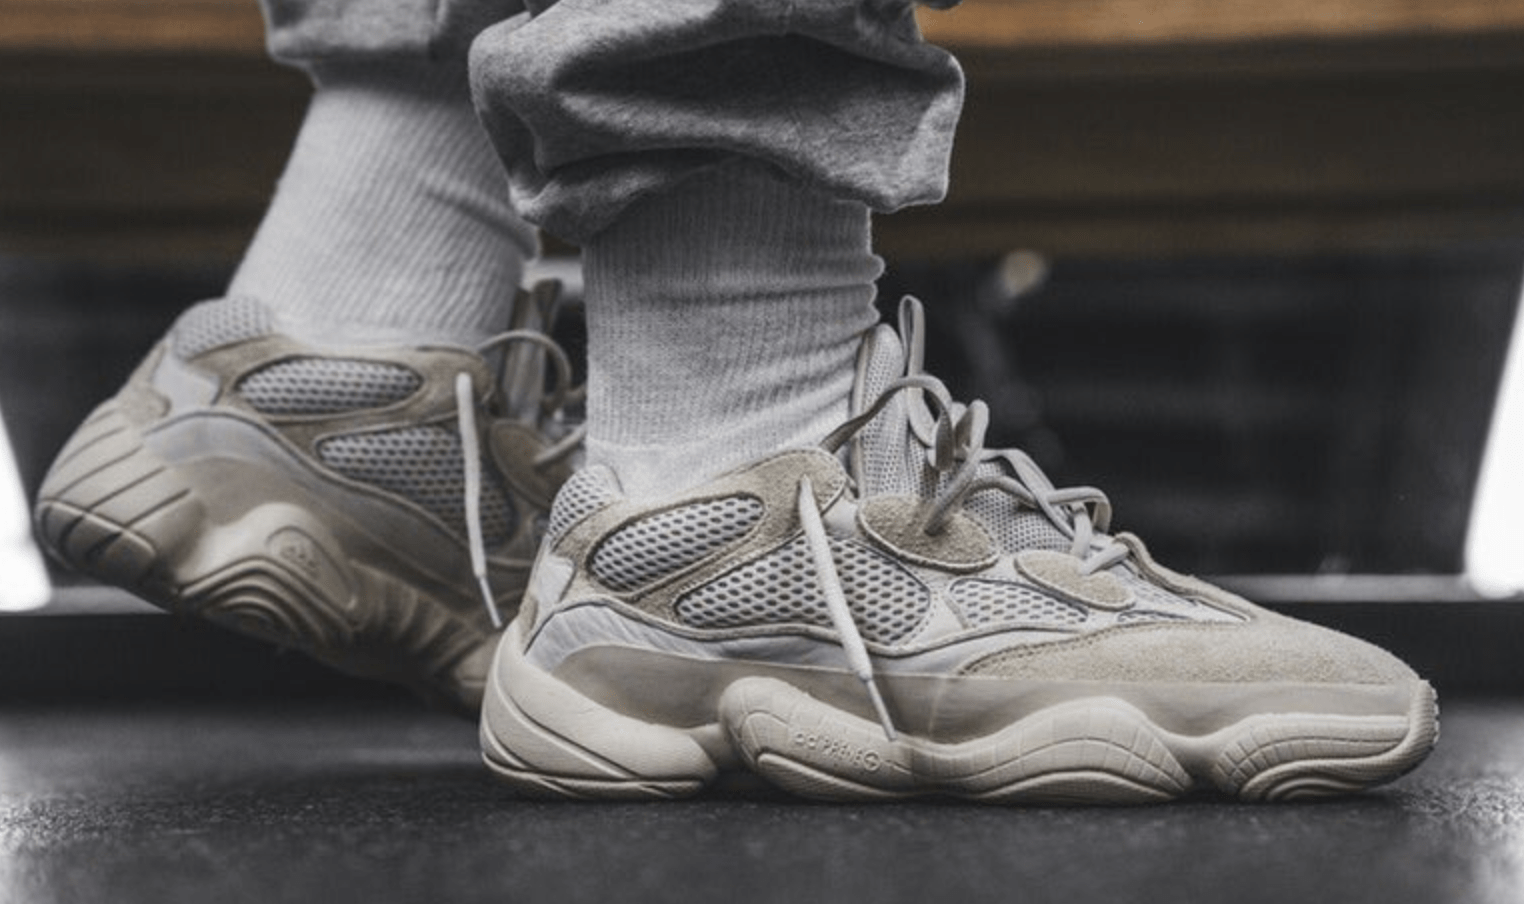 Take A Closer Look At The Adidas Yeezy 500 Quot Desert Rat Quot In